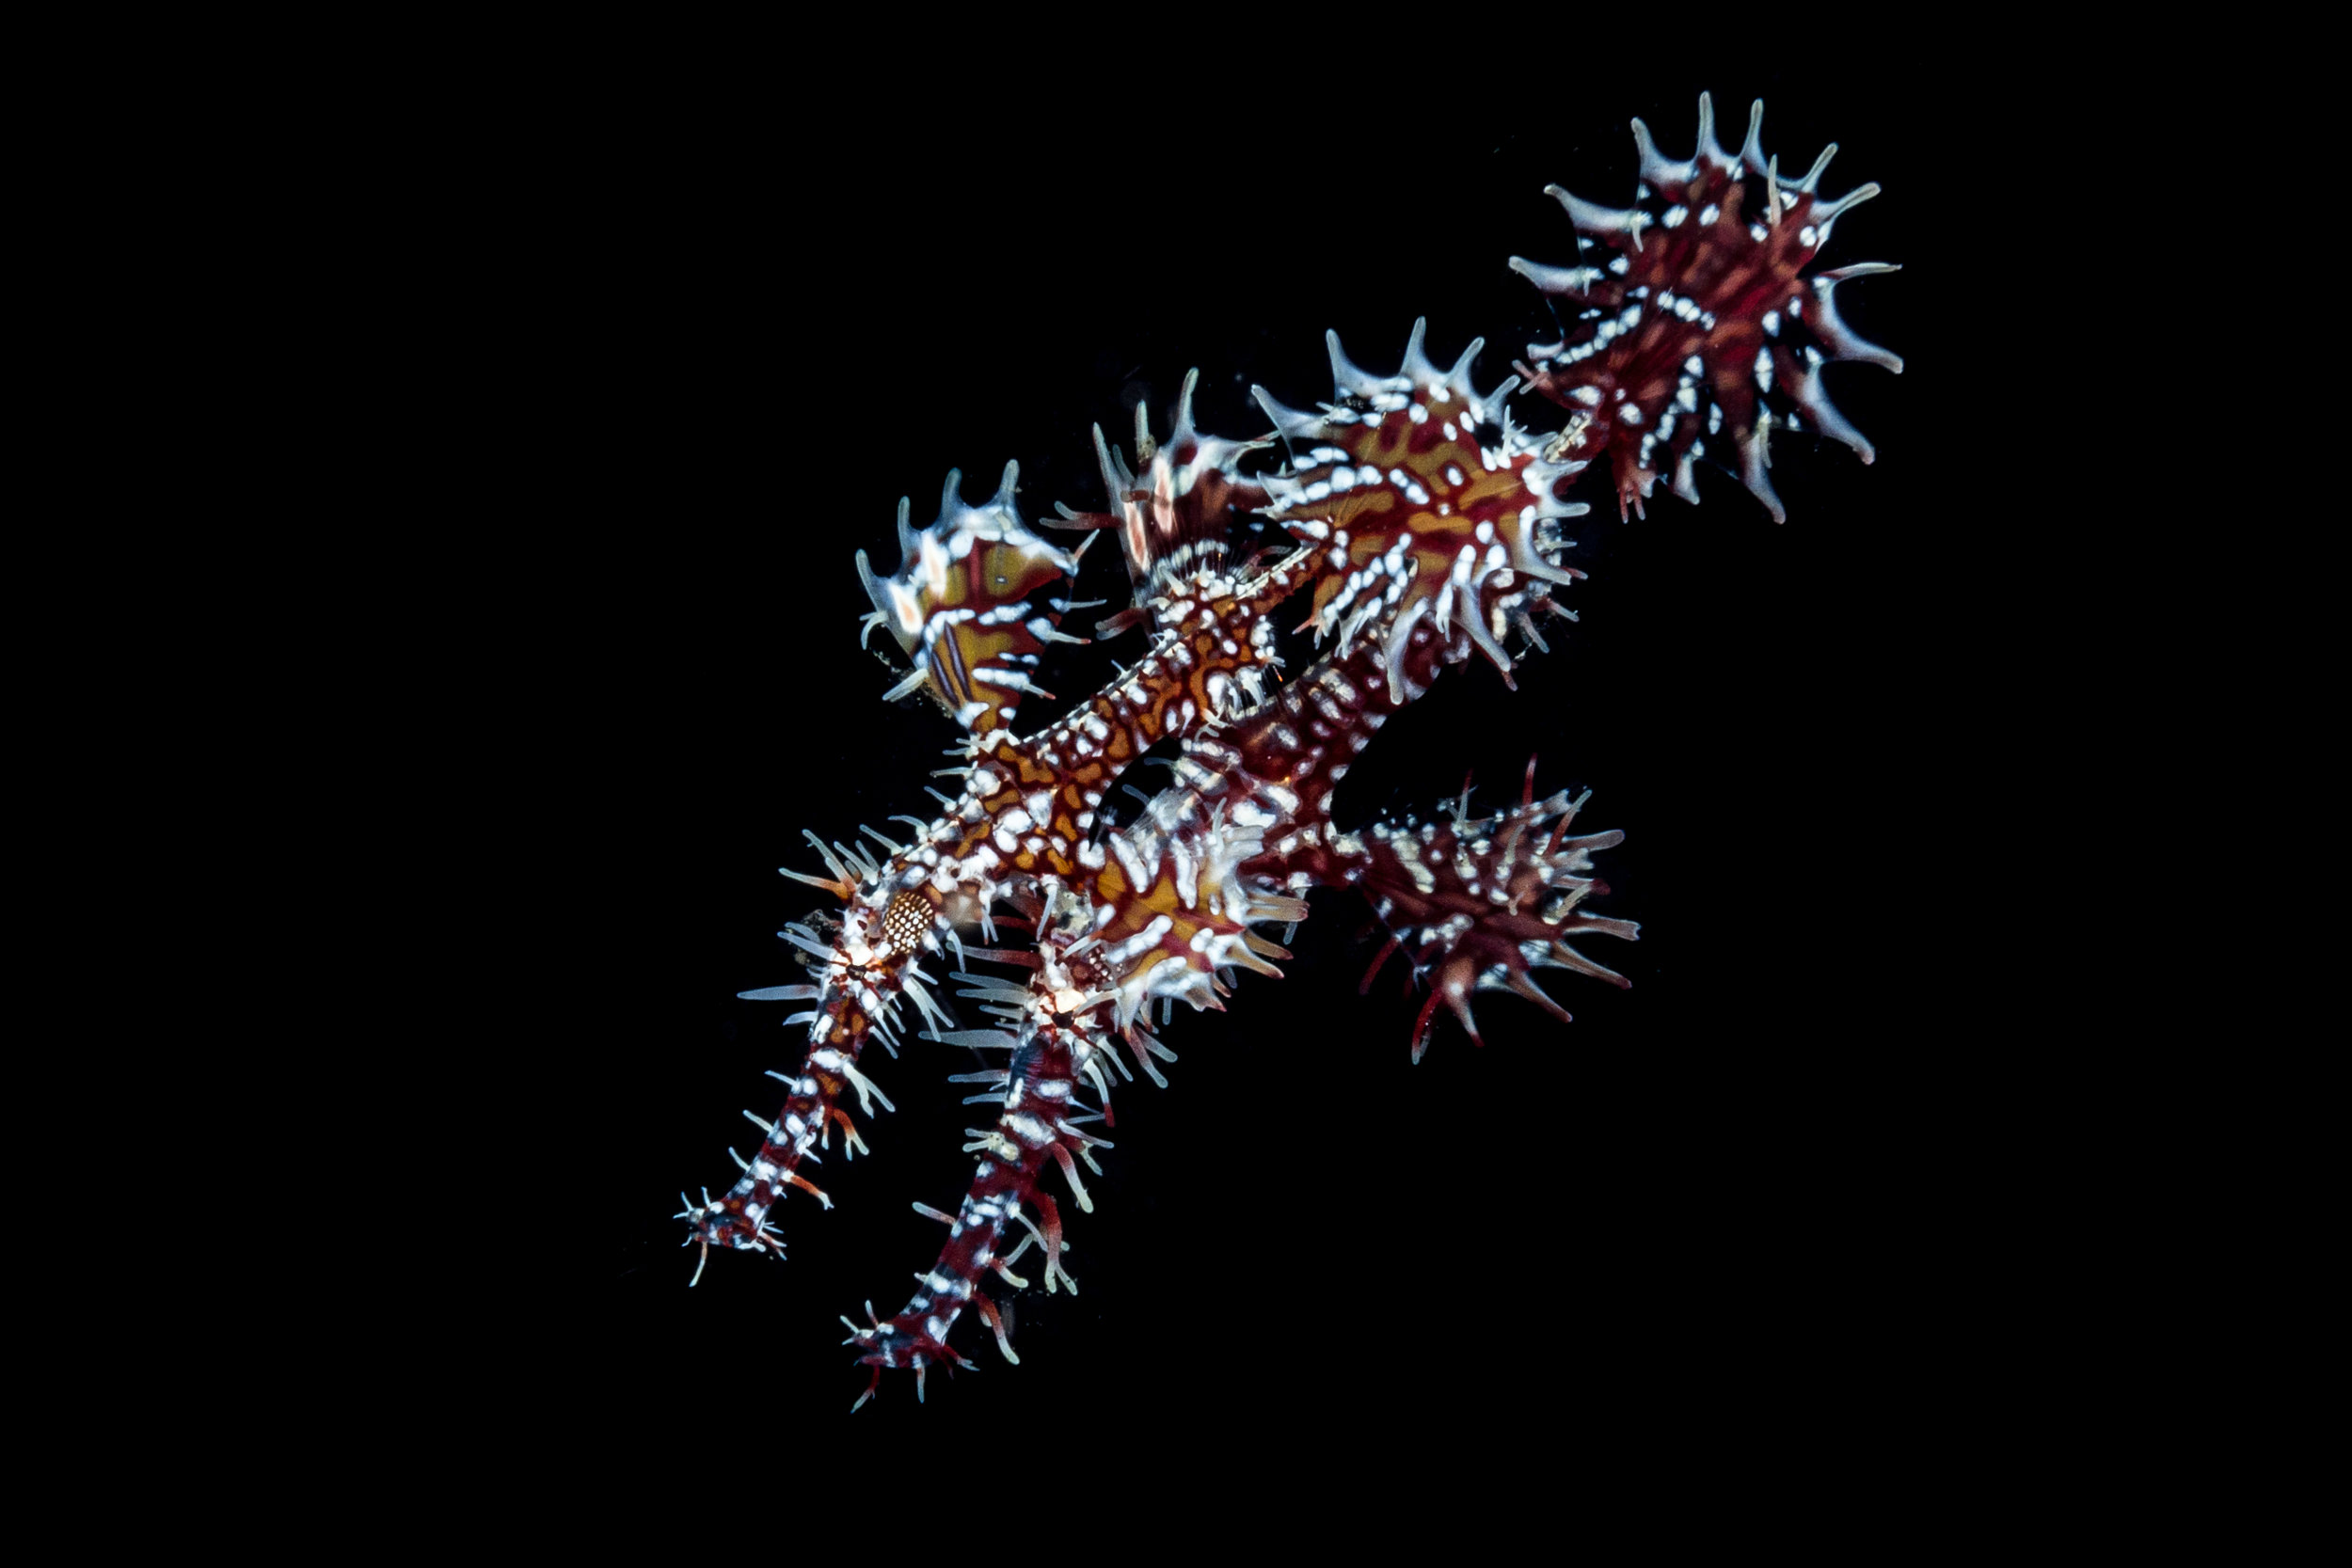 Pair of ornate ghost pipefish CREDIT: Wojtek Meczynski / coral reef image bank